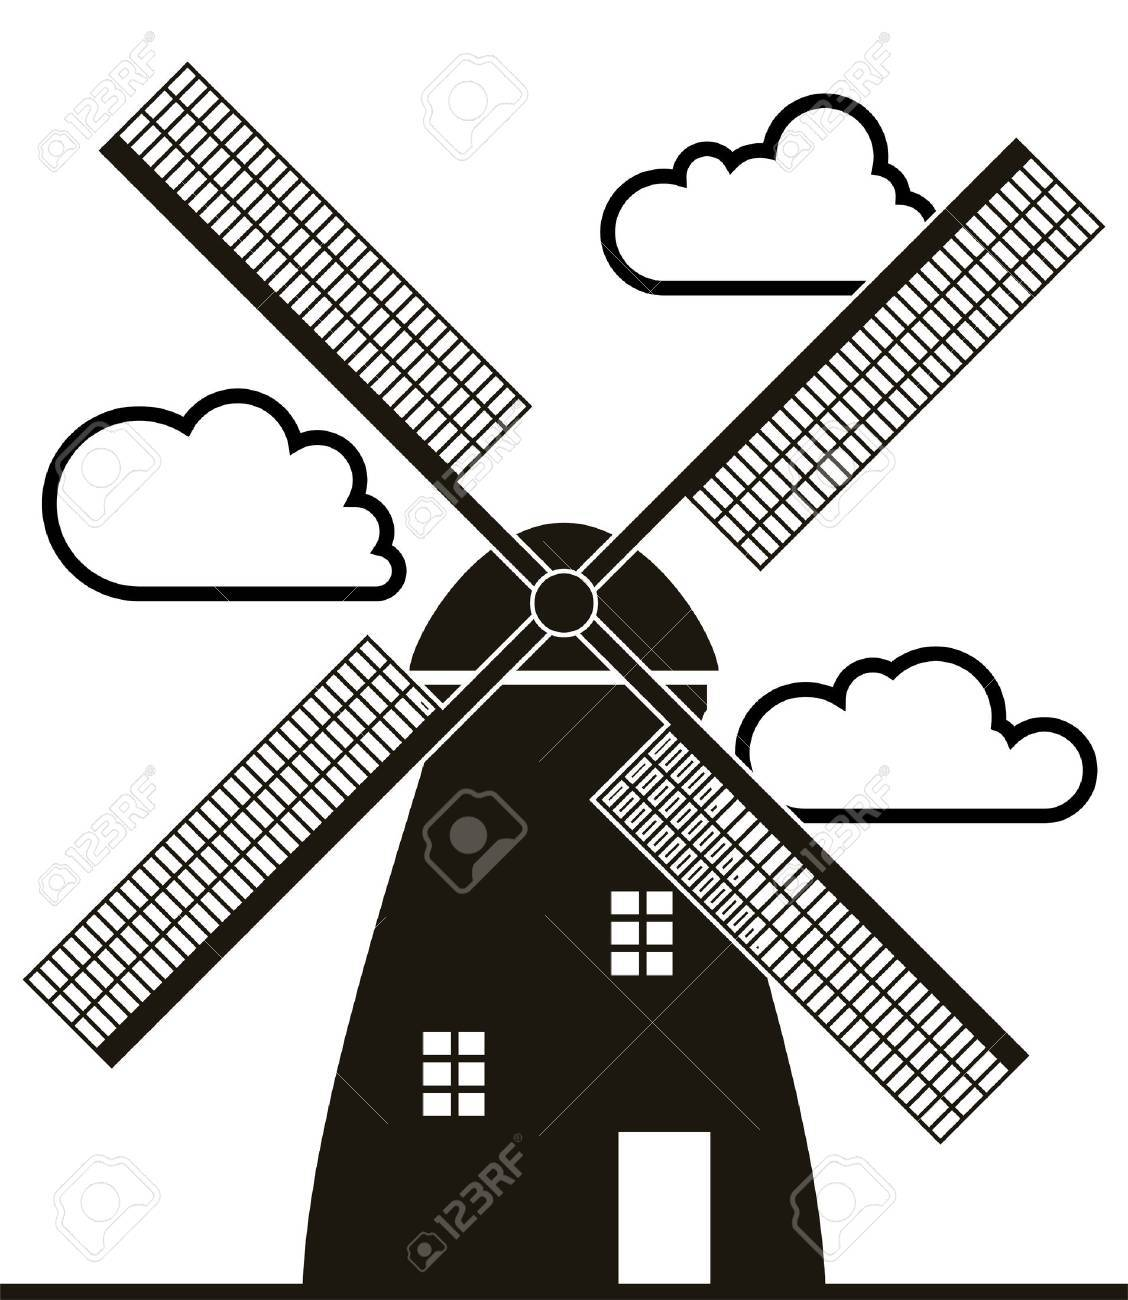 Windmill clipart black and white 6 » Clipart Portal.